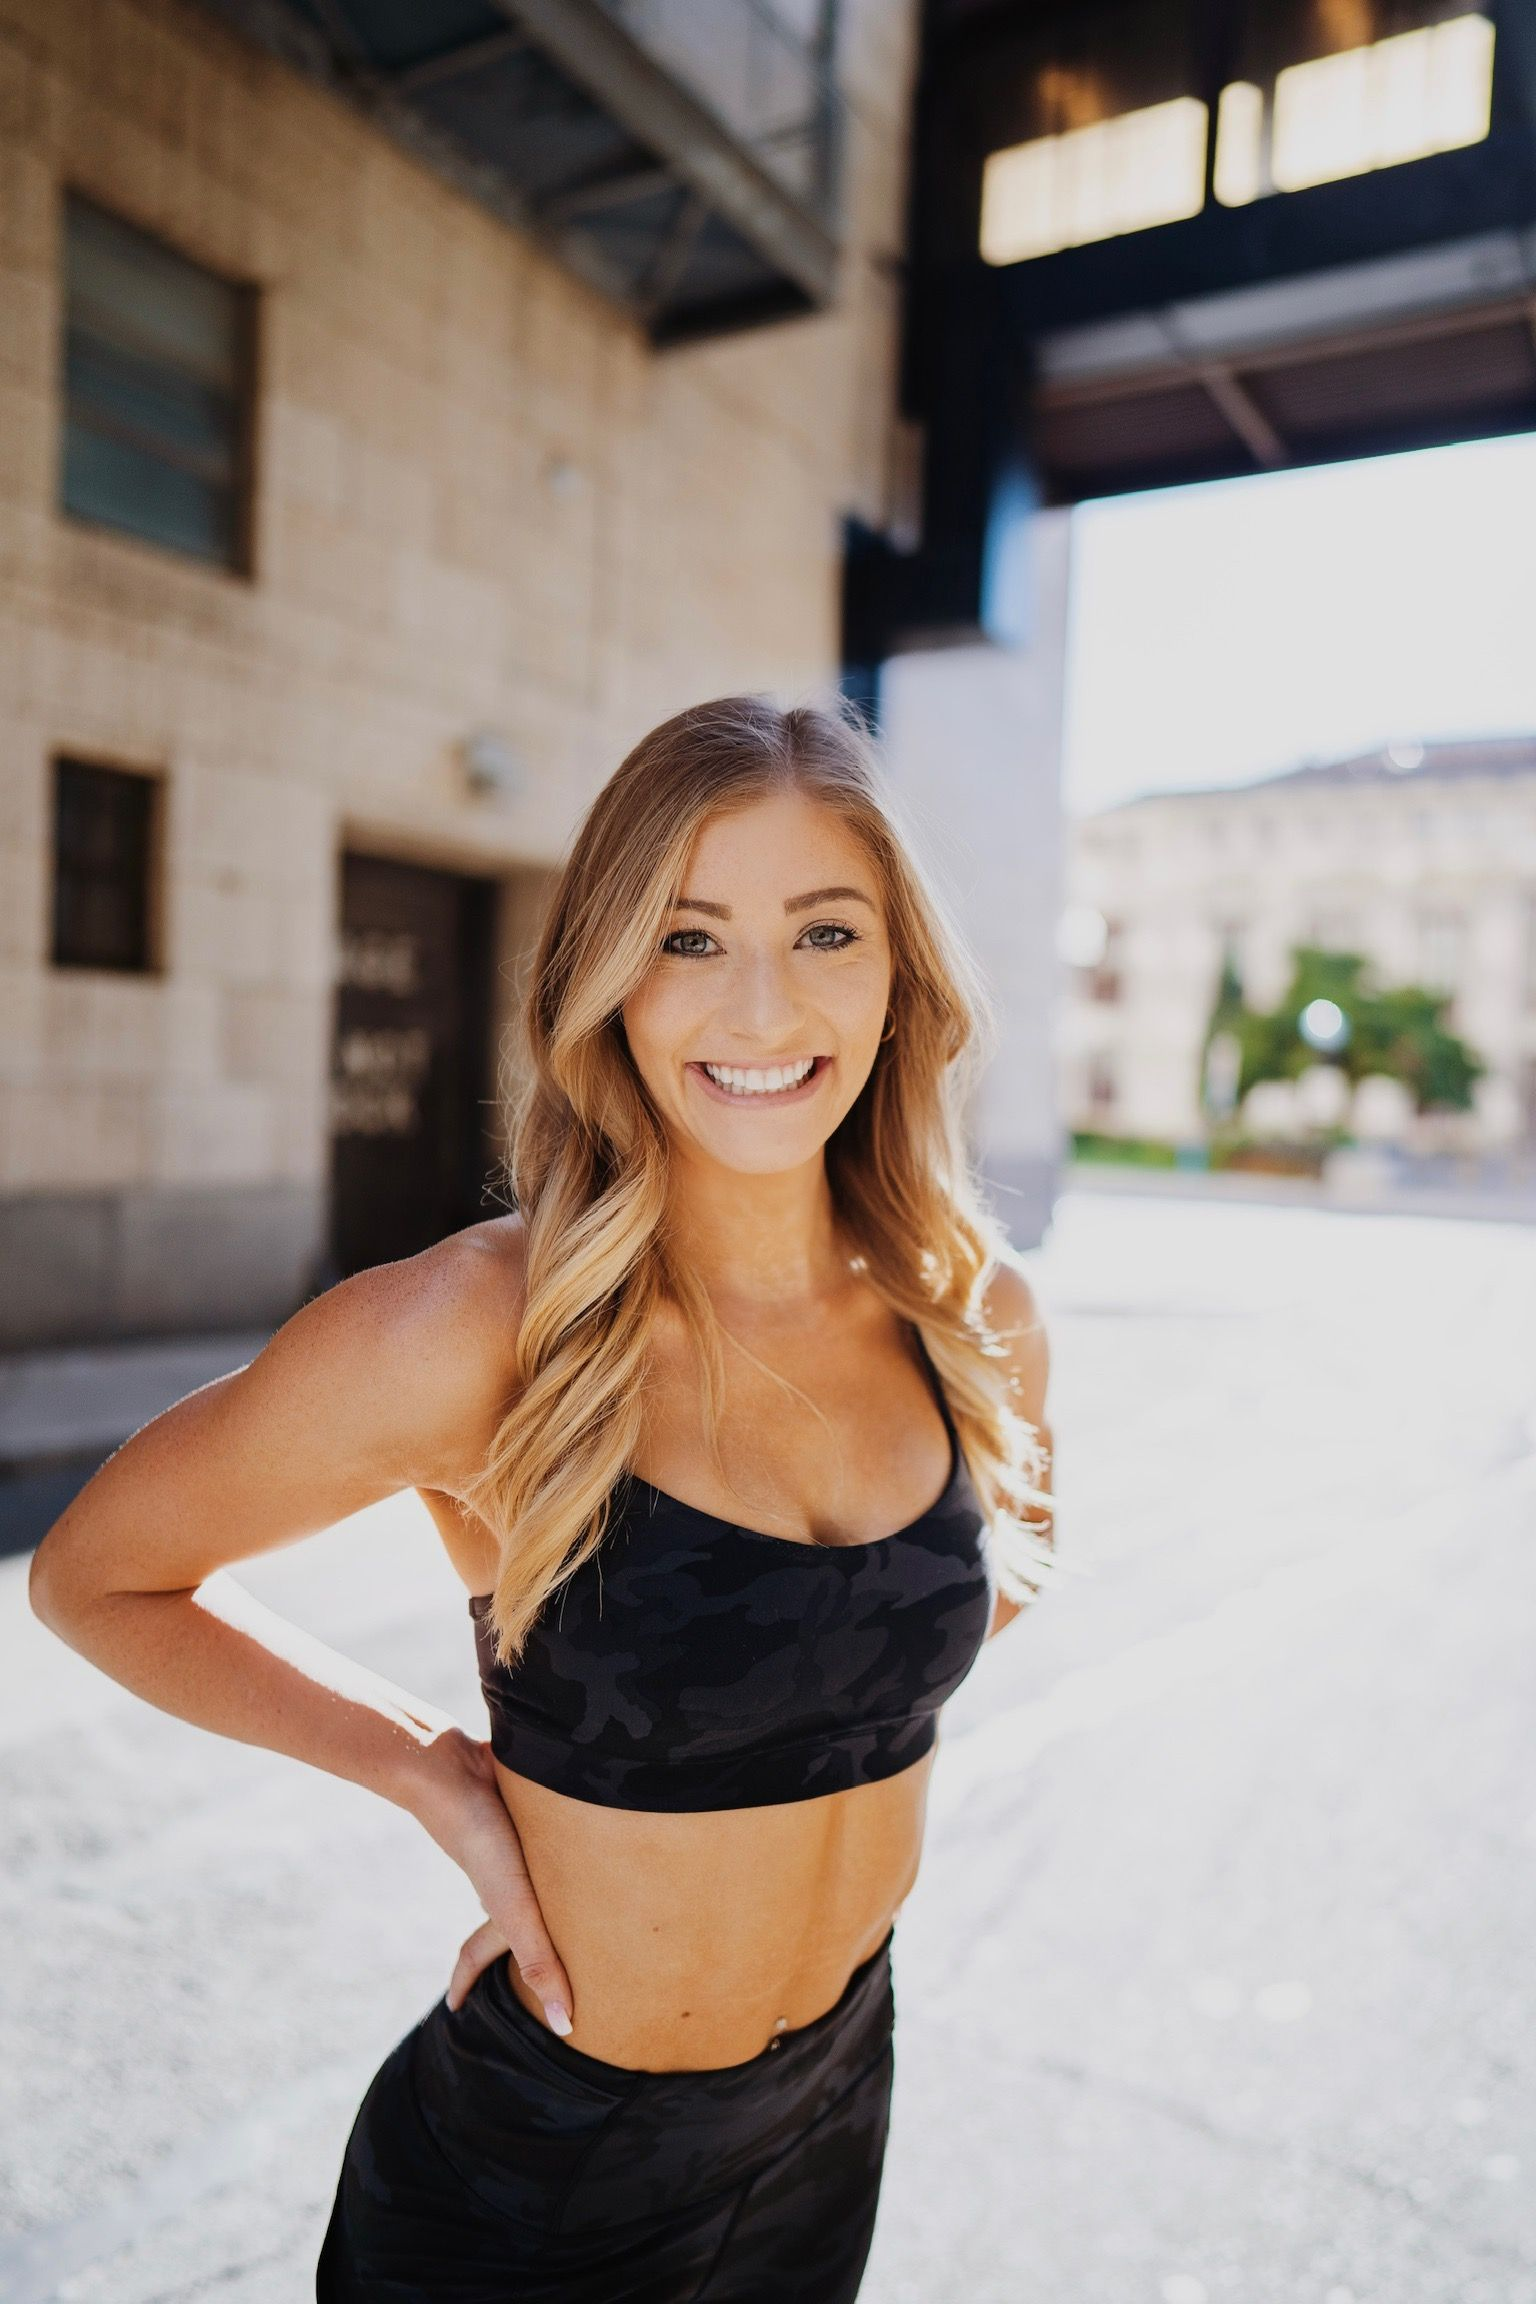 Kyle Bea in black workout apparel closeup smiling with hands on hips